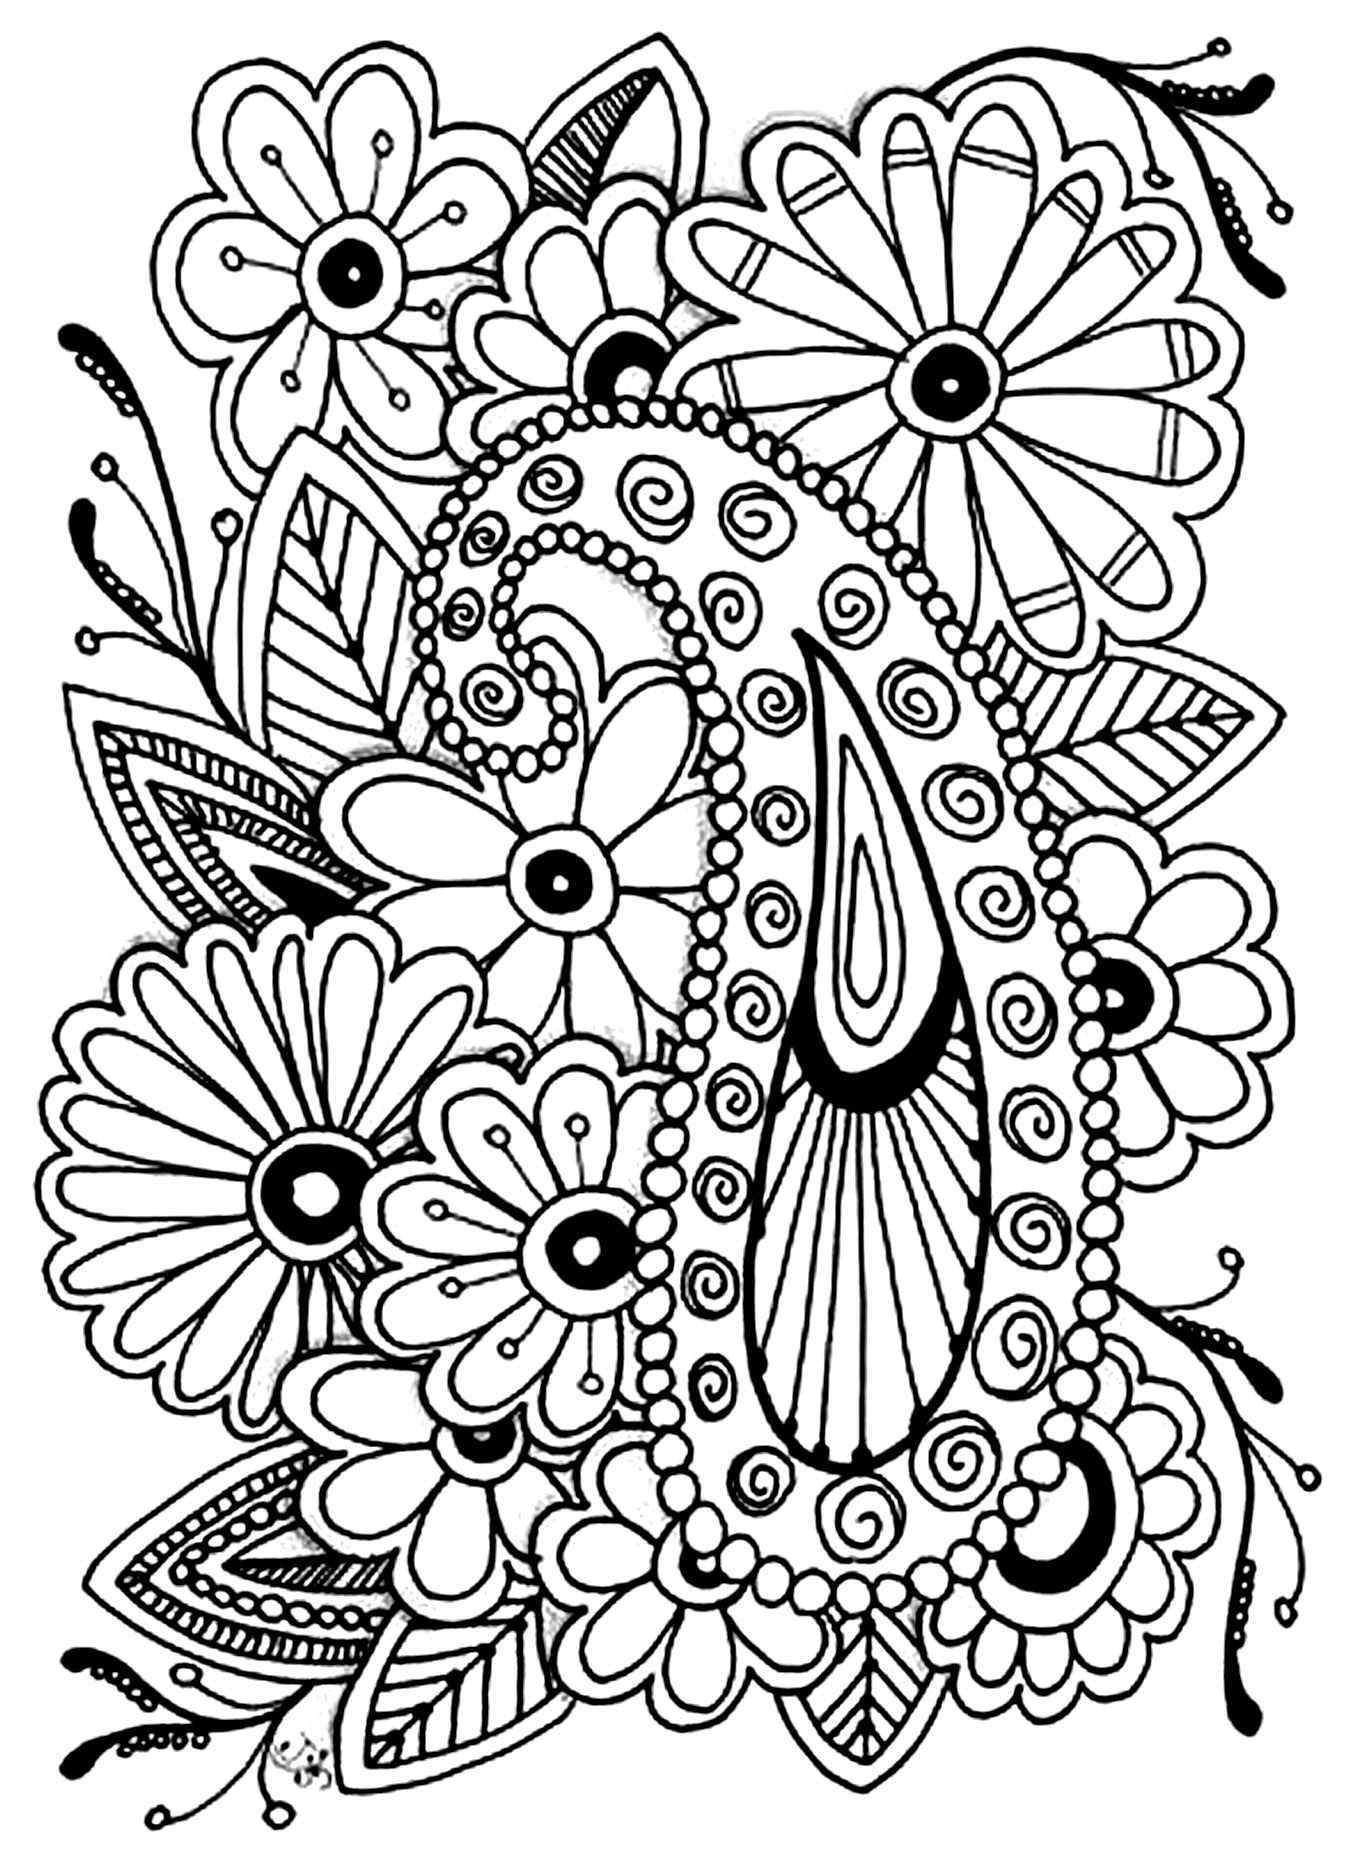 Flowers paisley - Flowers Adult Coloring Pages | flower coloring pages for adults